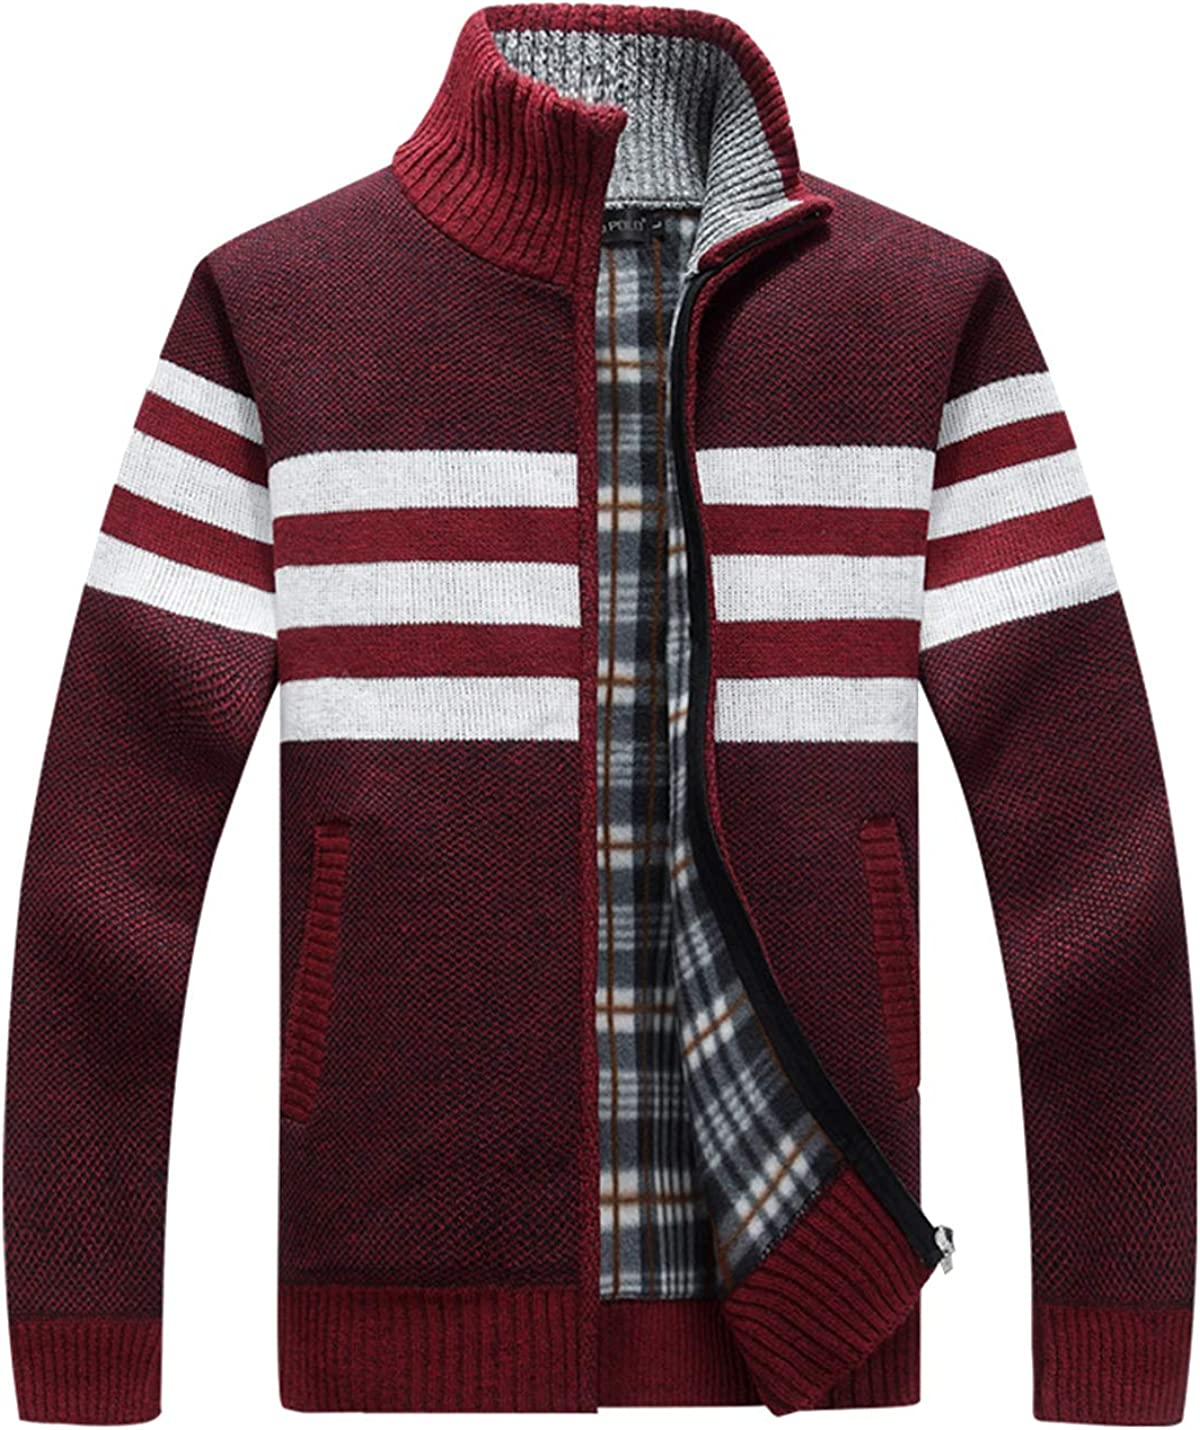 HaoMay Men's Causal Slim Zip-up Knitted Stripe Cardigans Sweater with Pockets